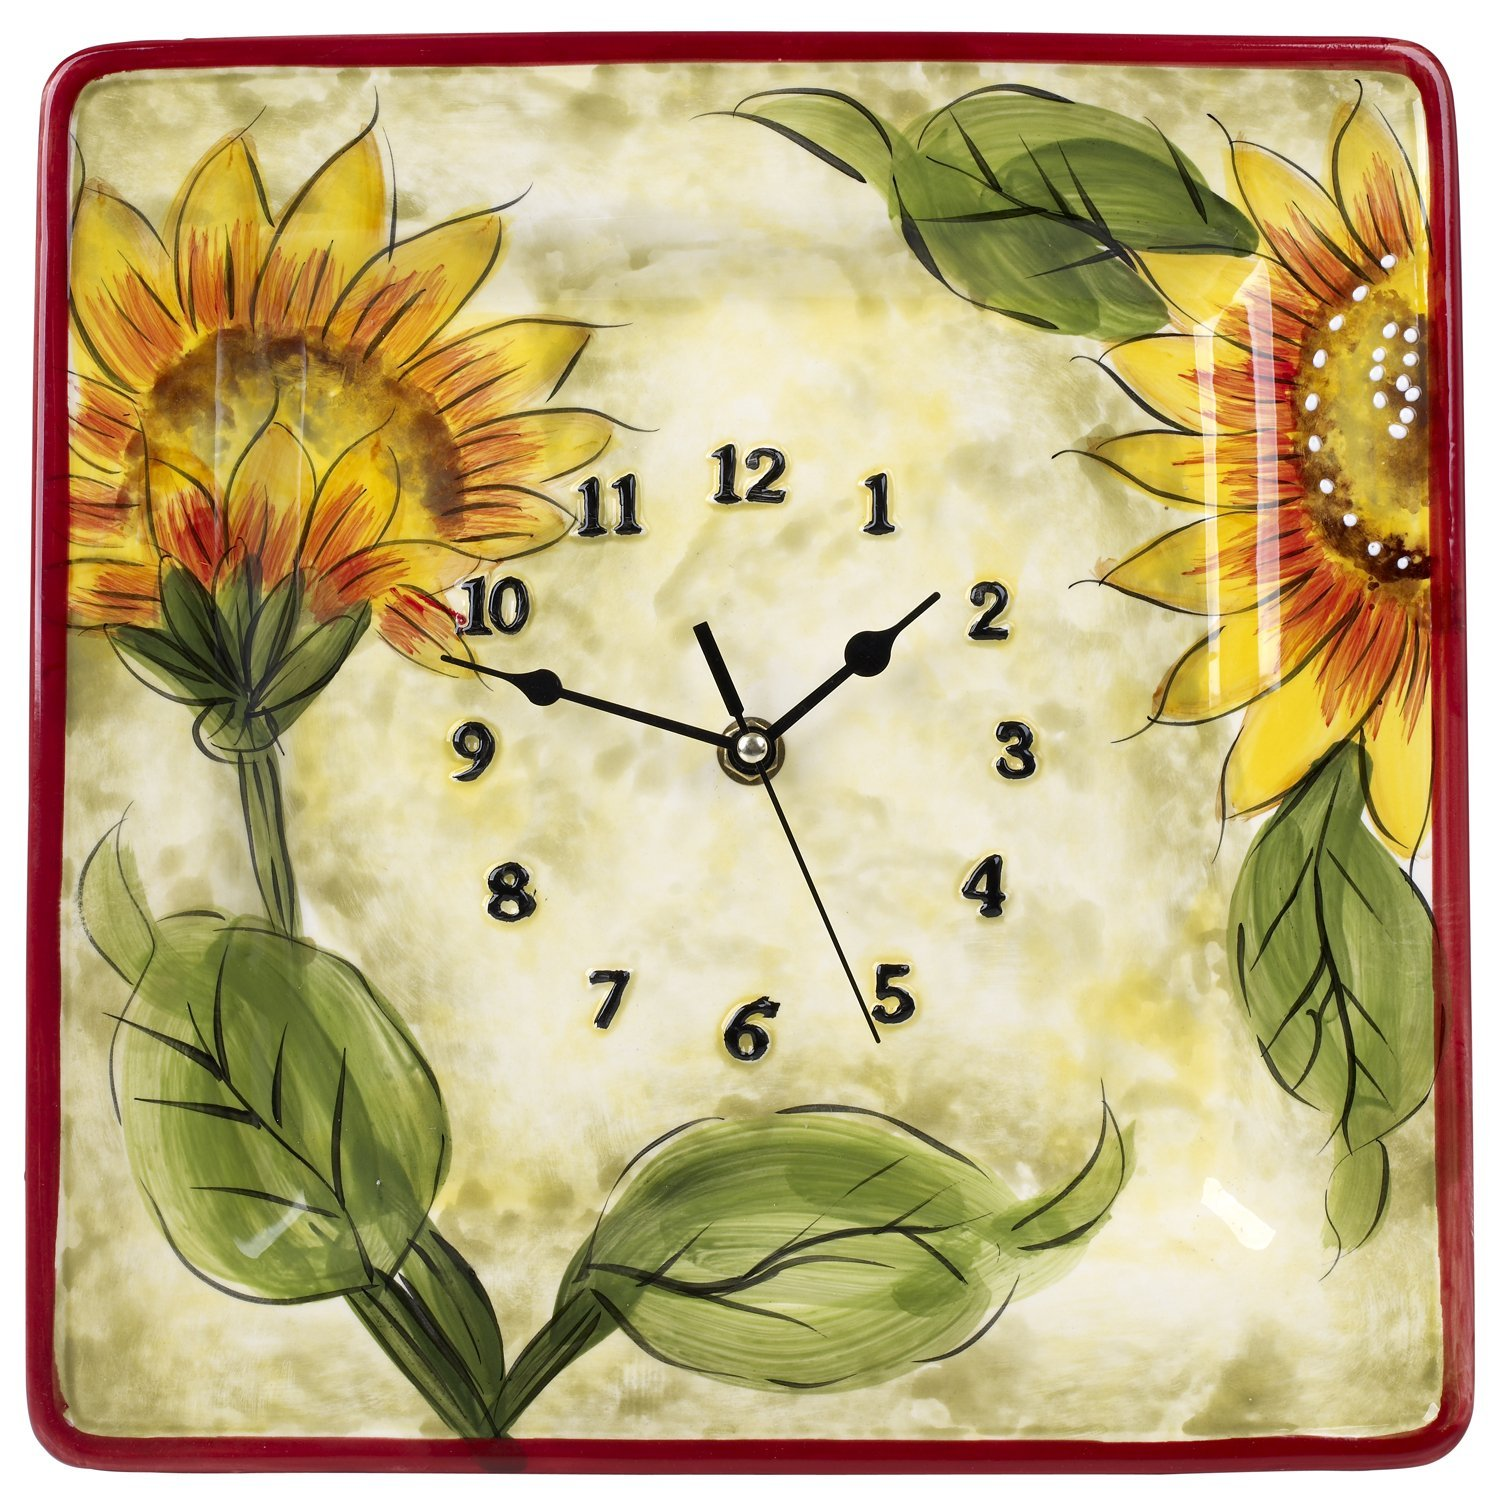 Original Cucina Italiana Ceramic Square Wall Clock 12 x 12 Inches ...